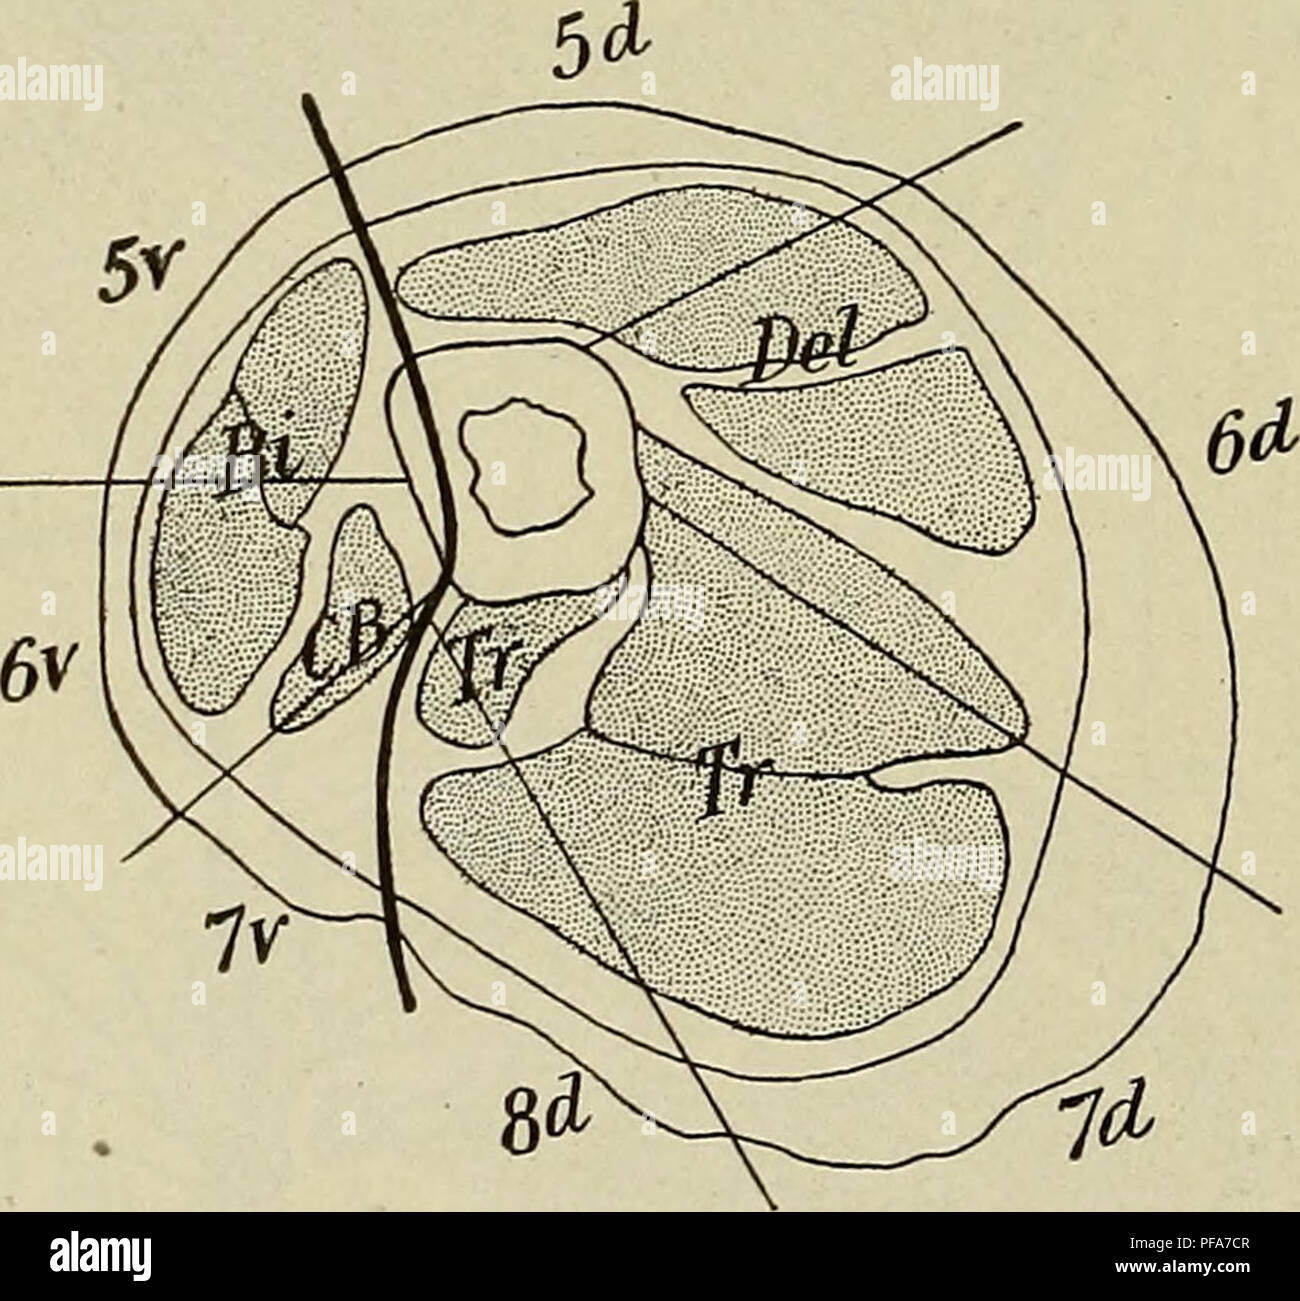 The Development Of The Human Body A Manual Of Human Embryology